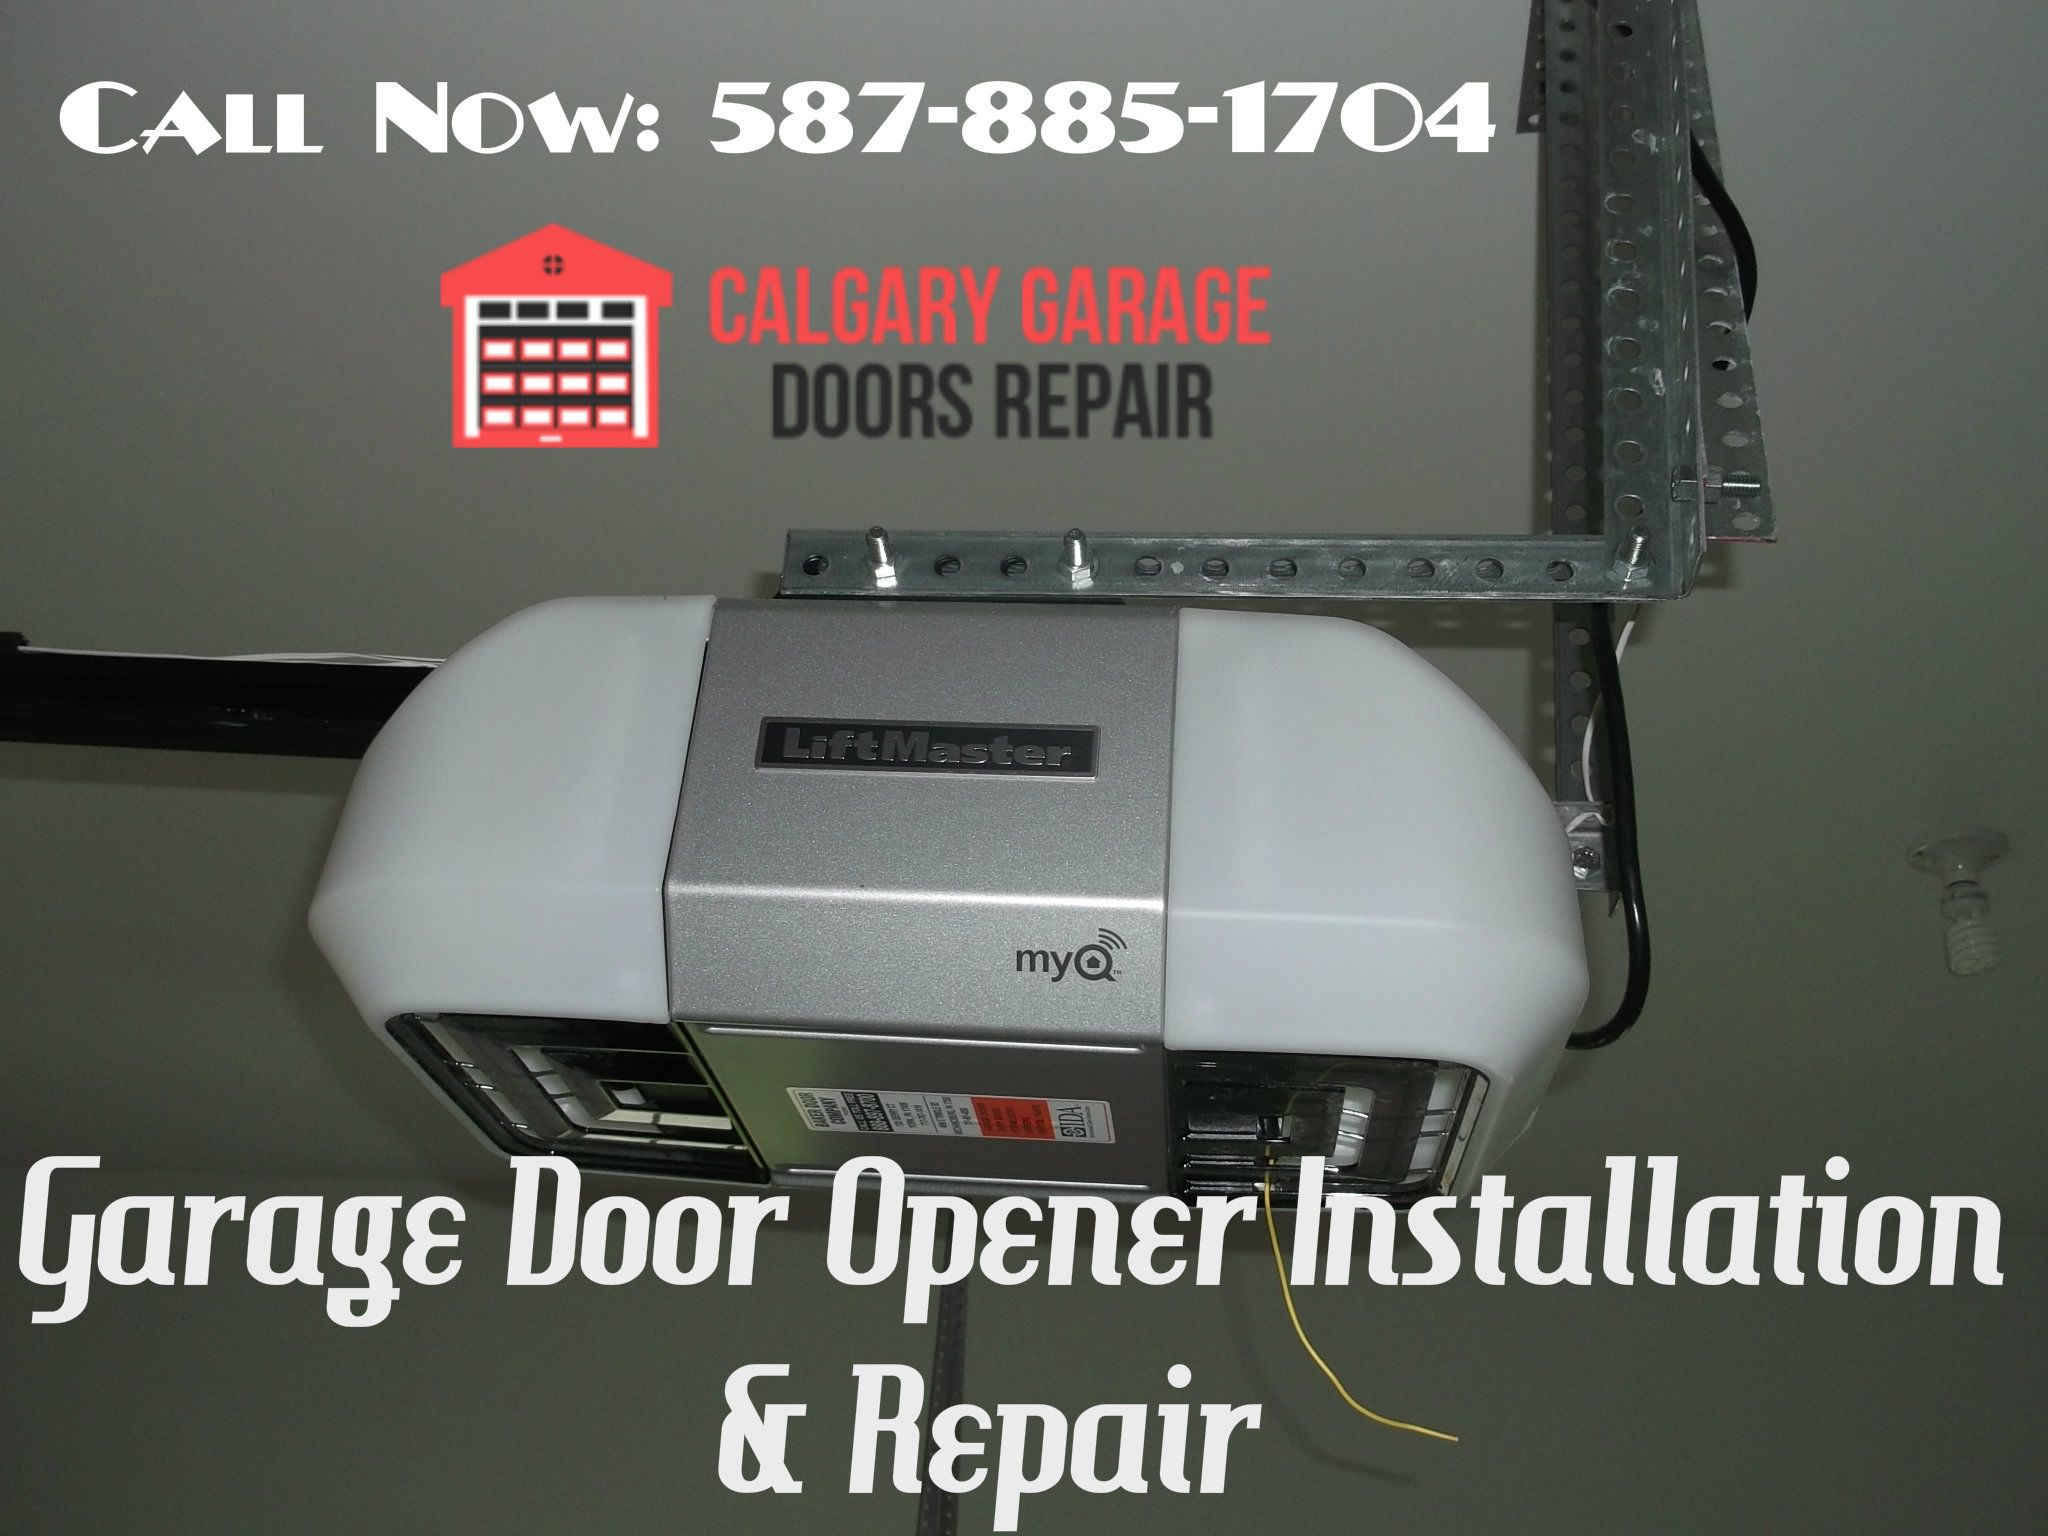 Find The Best Garage Door Opener Installation Repair Service In